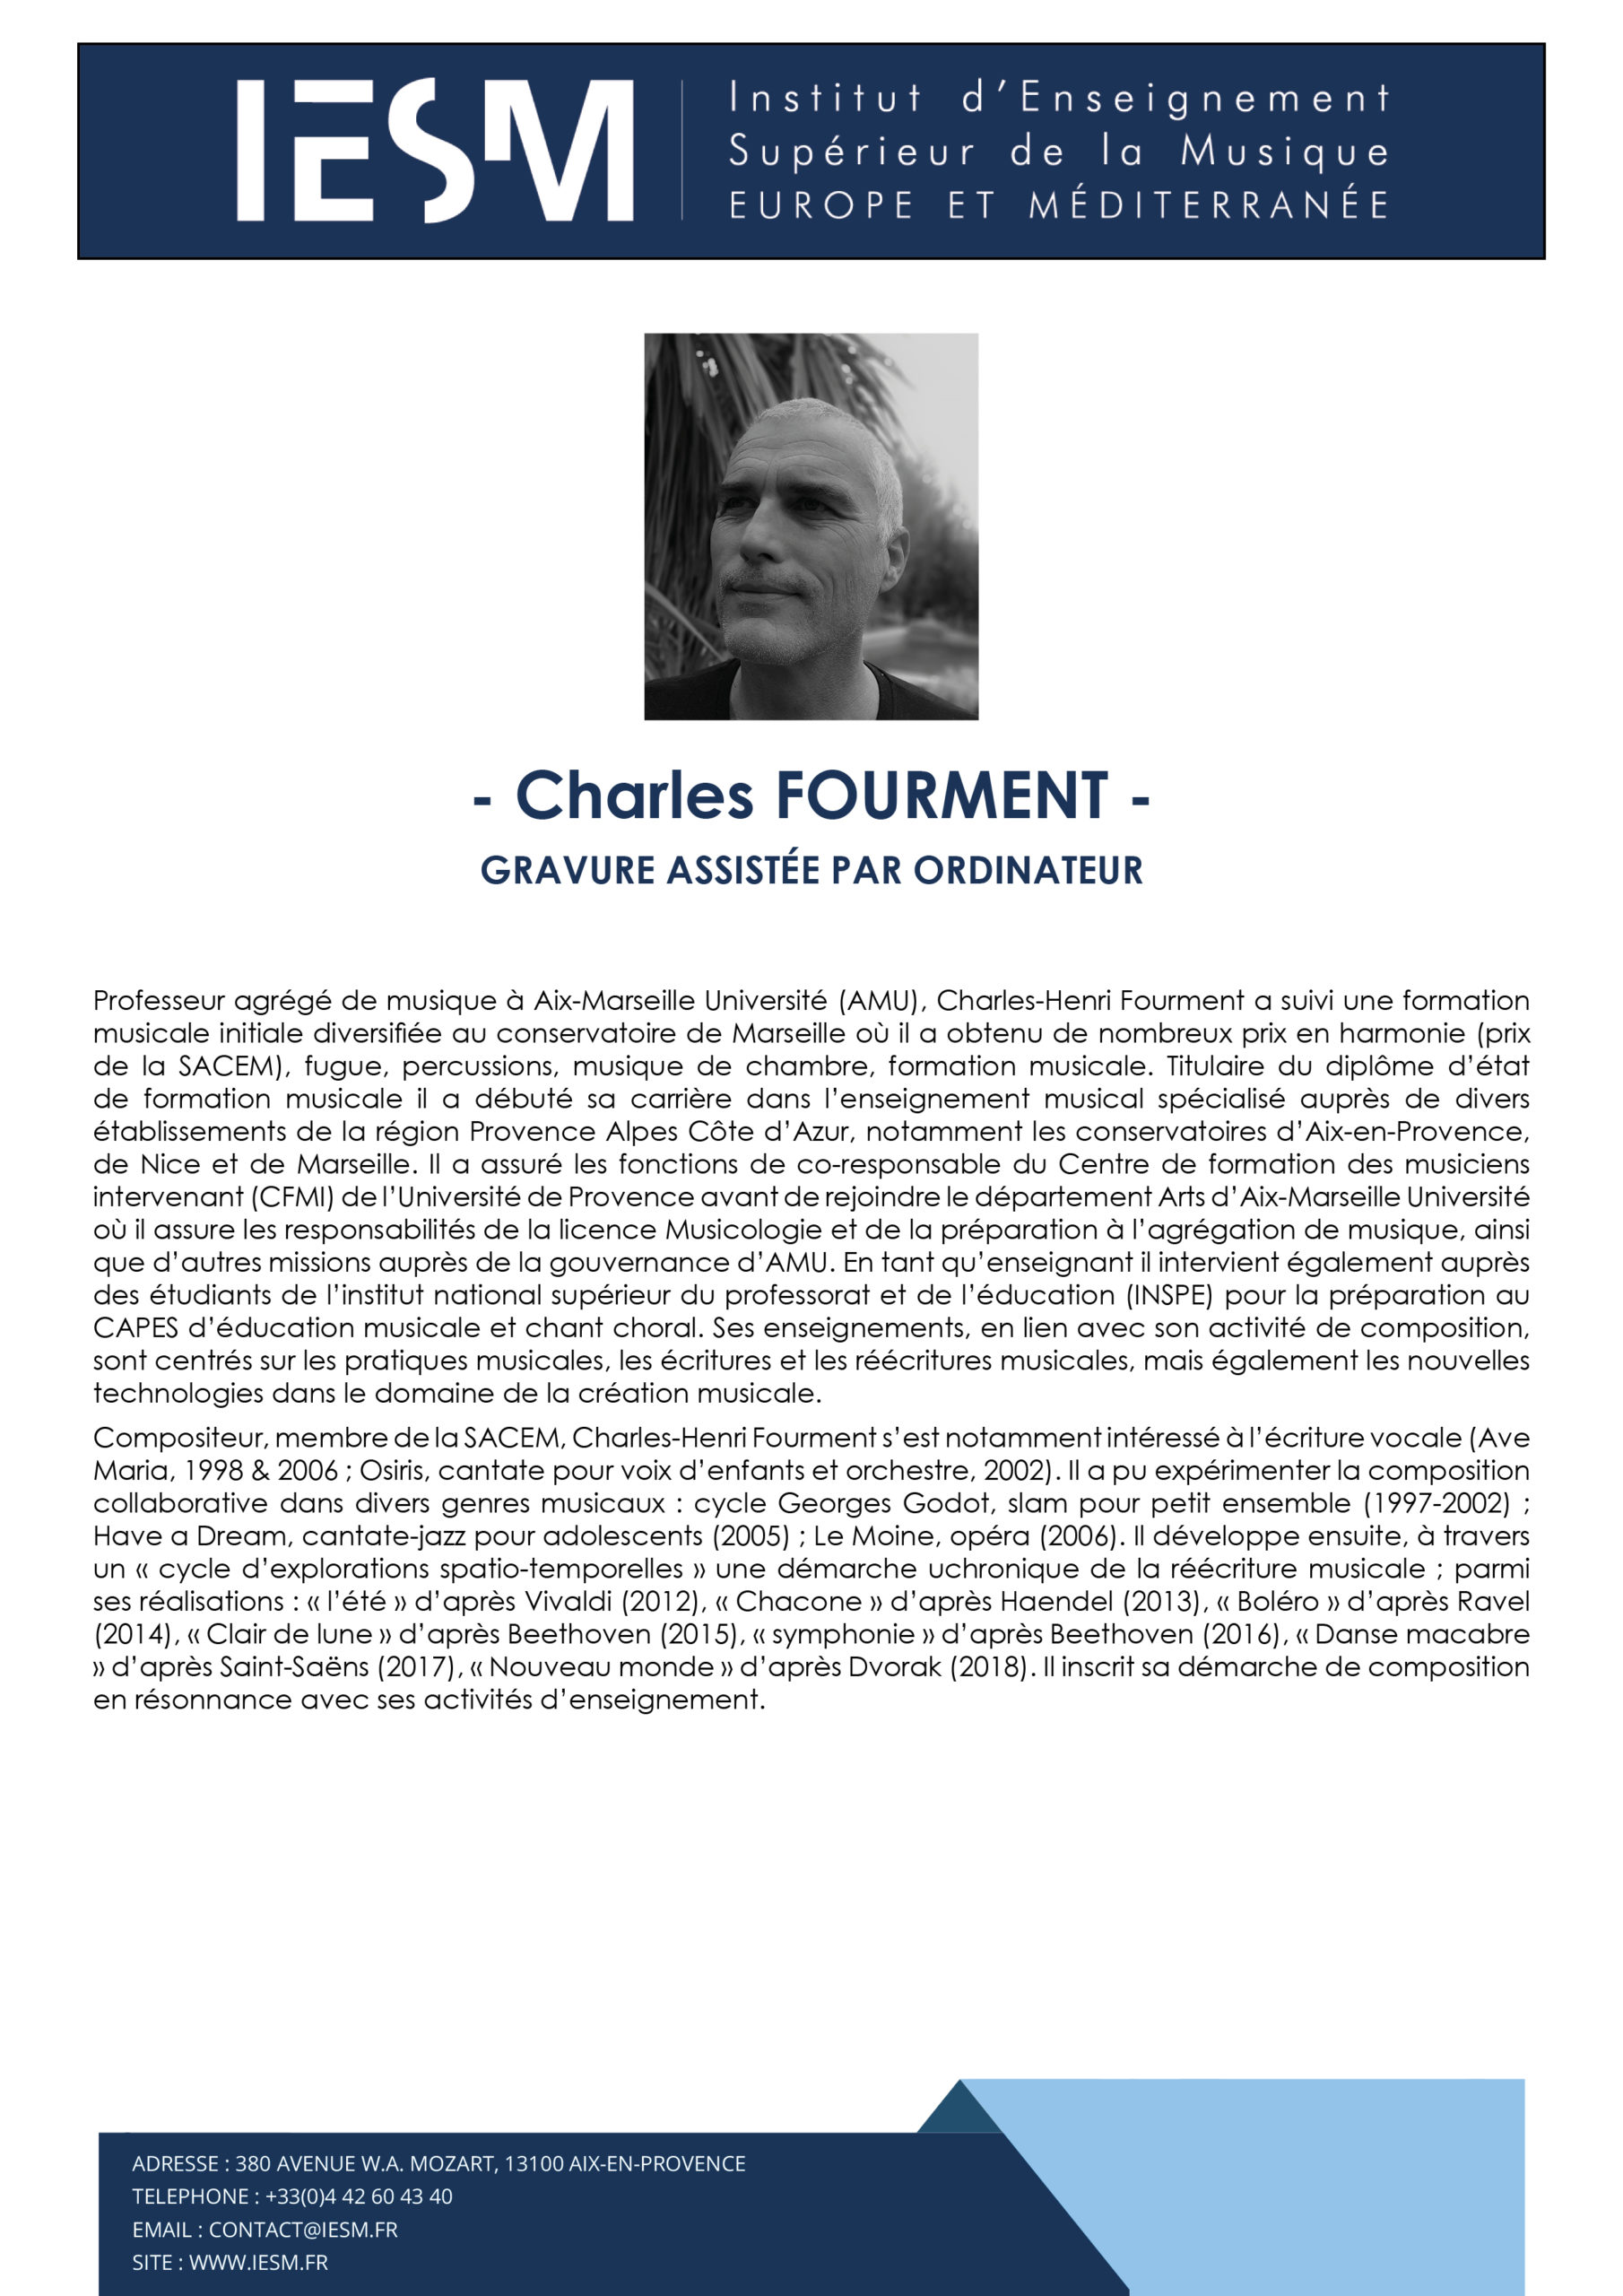 FOURMENT CHARLES scaled